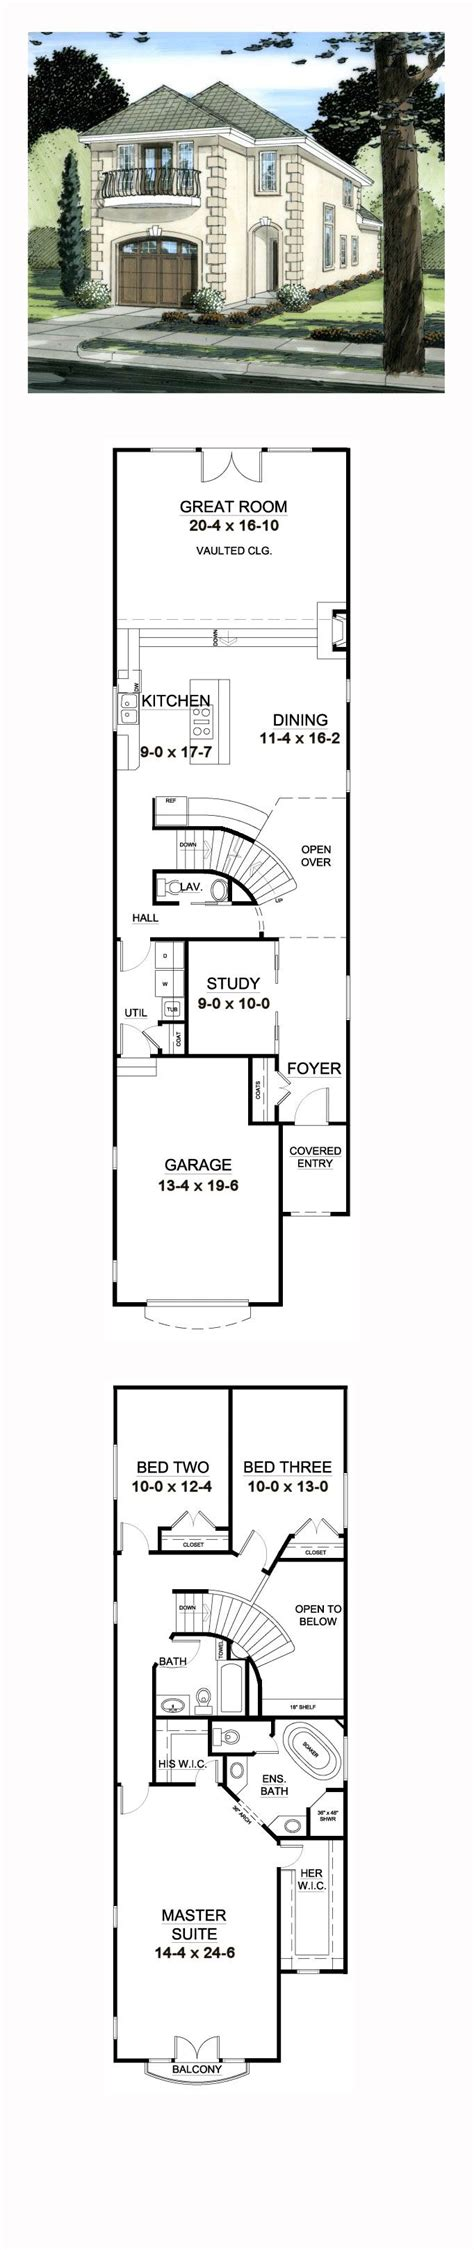 house floor plans for narrow lots best 25 narrow house plans ideas on narrow